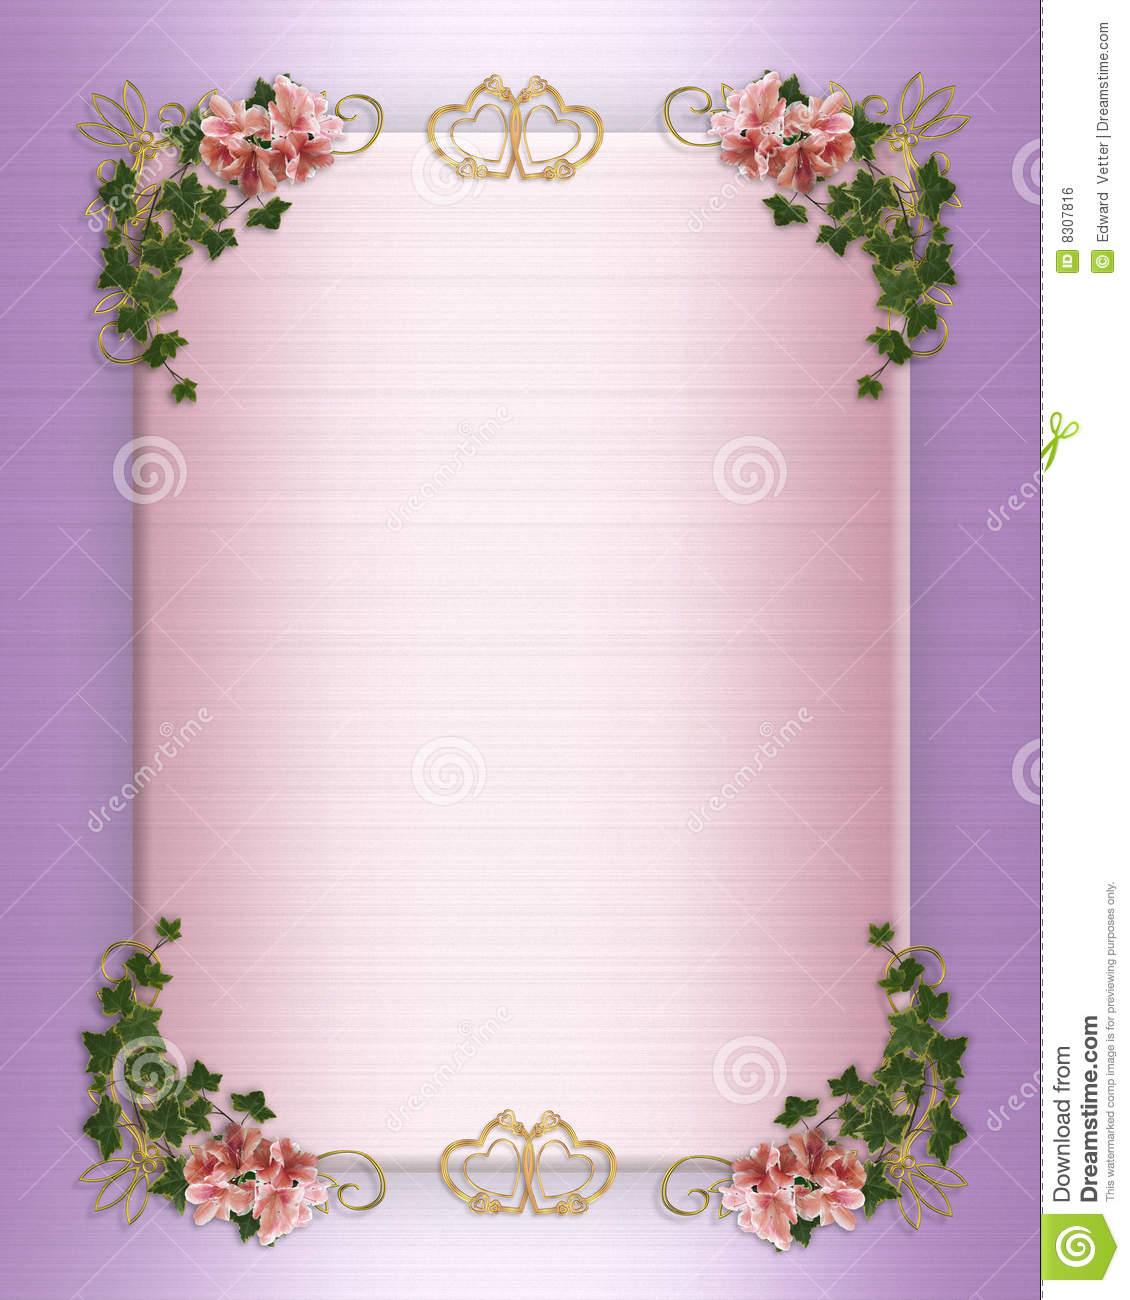 Wedding Invite Borders: Wedding Invitation Floral Border Royalty Free Stock Image